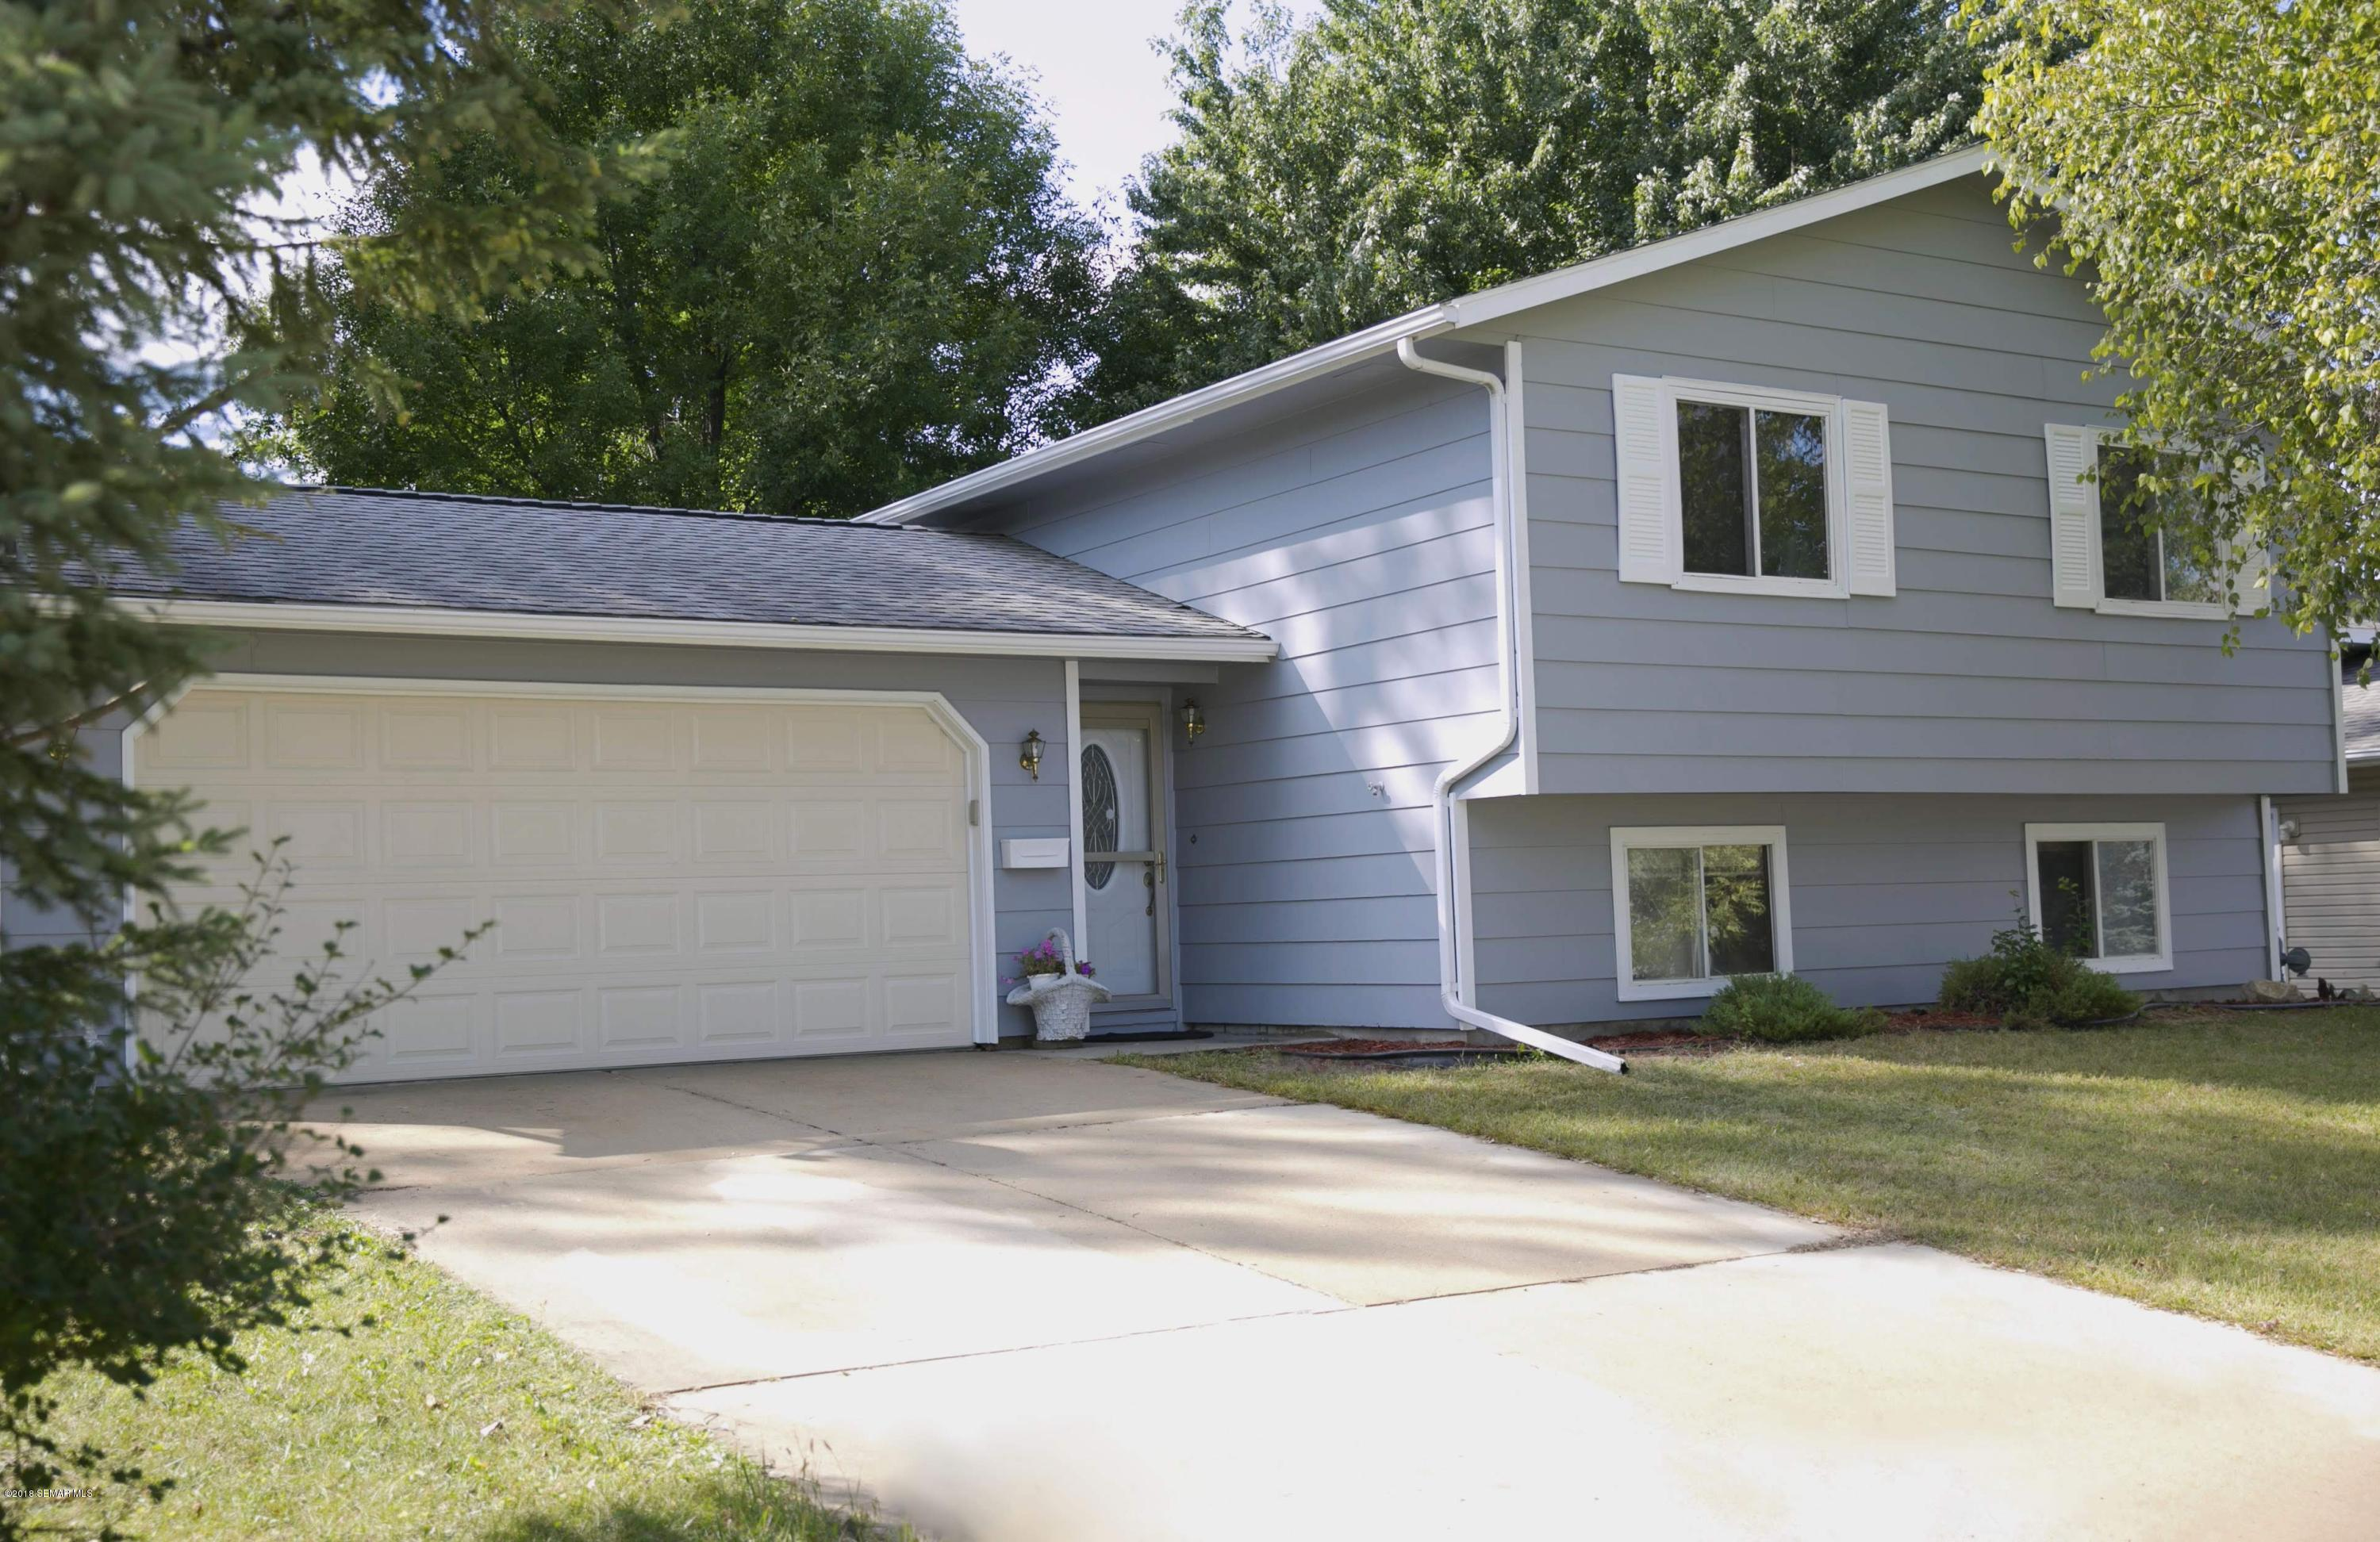 3725 10th,Rochester,Minnesota 55902,4 Bedrooms Bedrooms,2 BathroomsBathrooms,Single family residence,10th,4091401